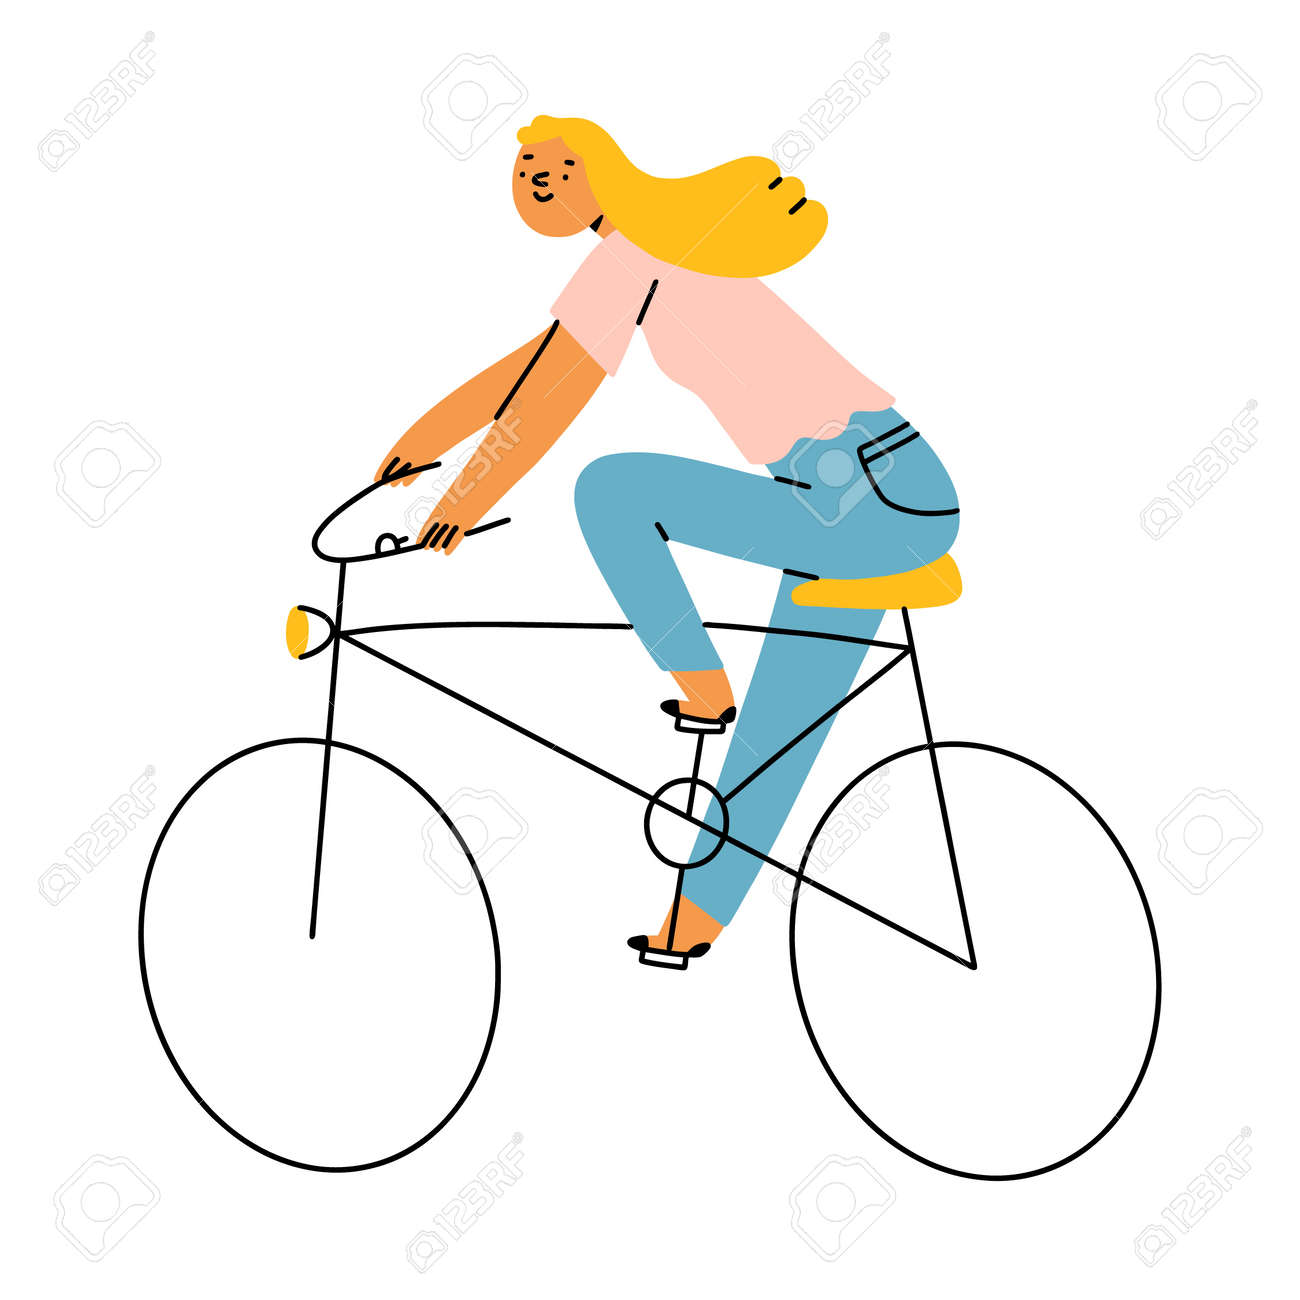 Blond girl riding a bicycle, vector illustration isolated on white background - 163336772